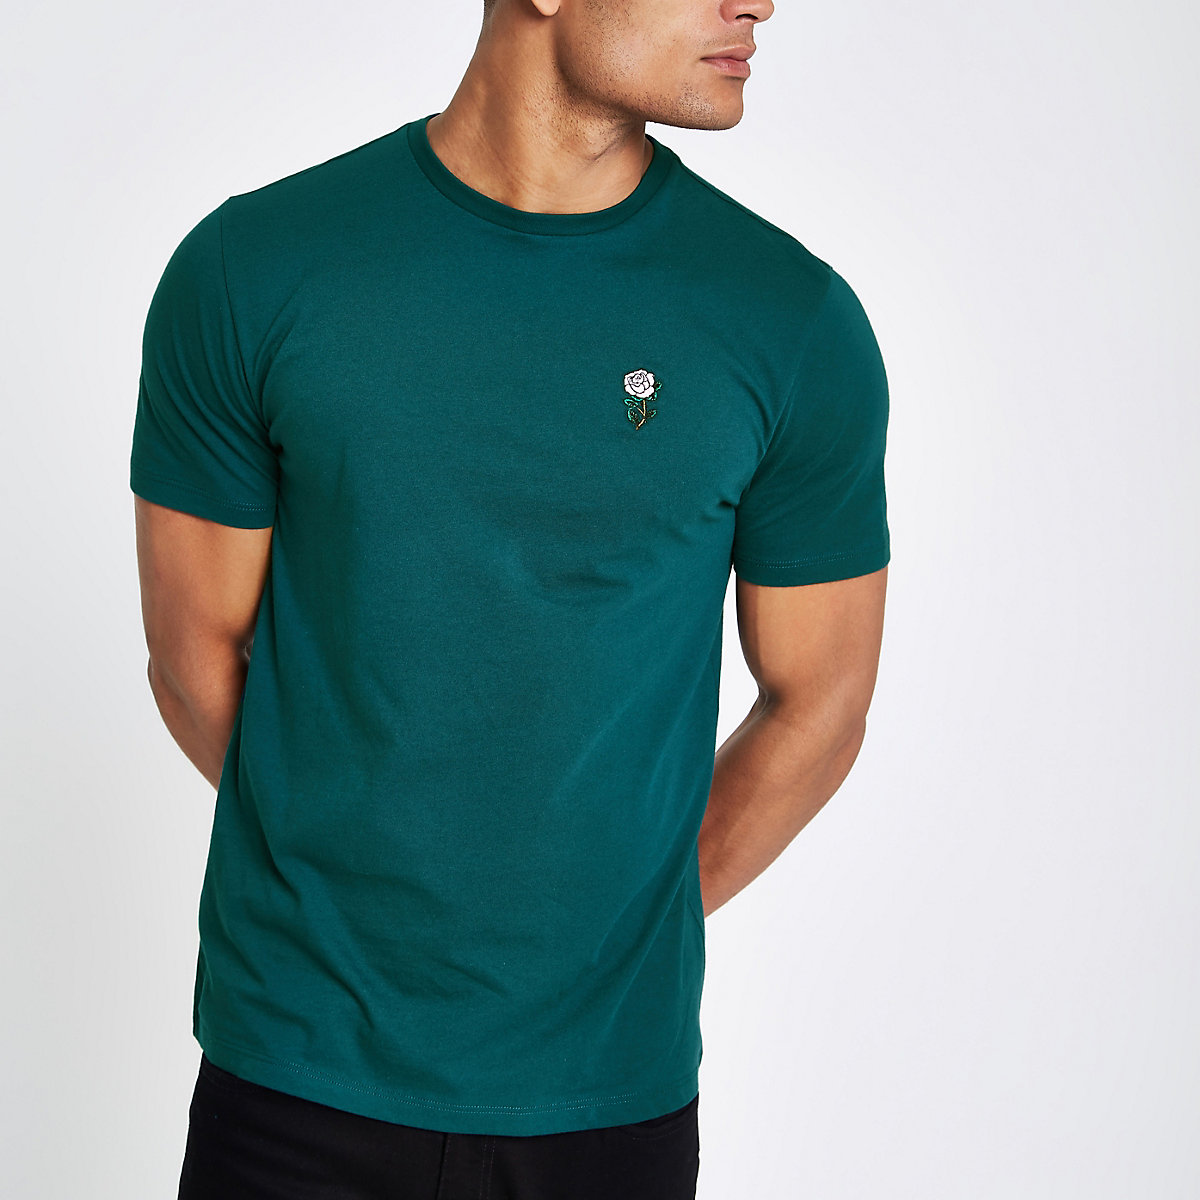 Teal green slim fit rose embroidered T-shirt